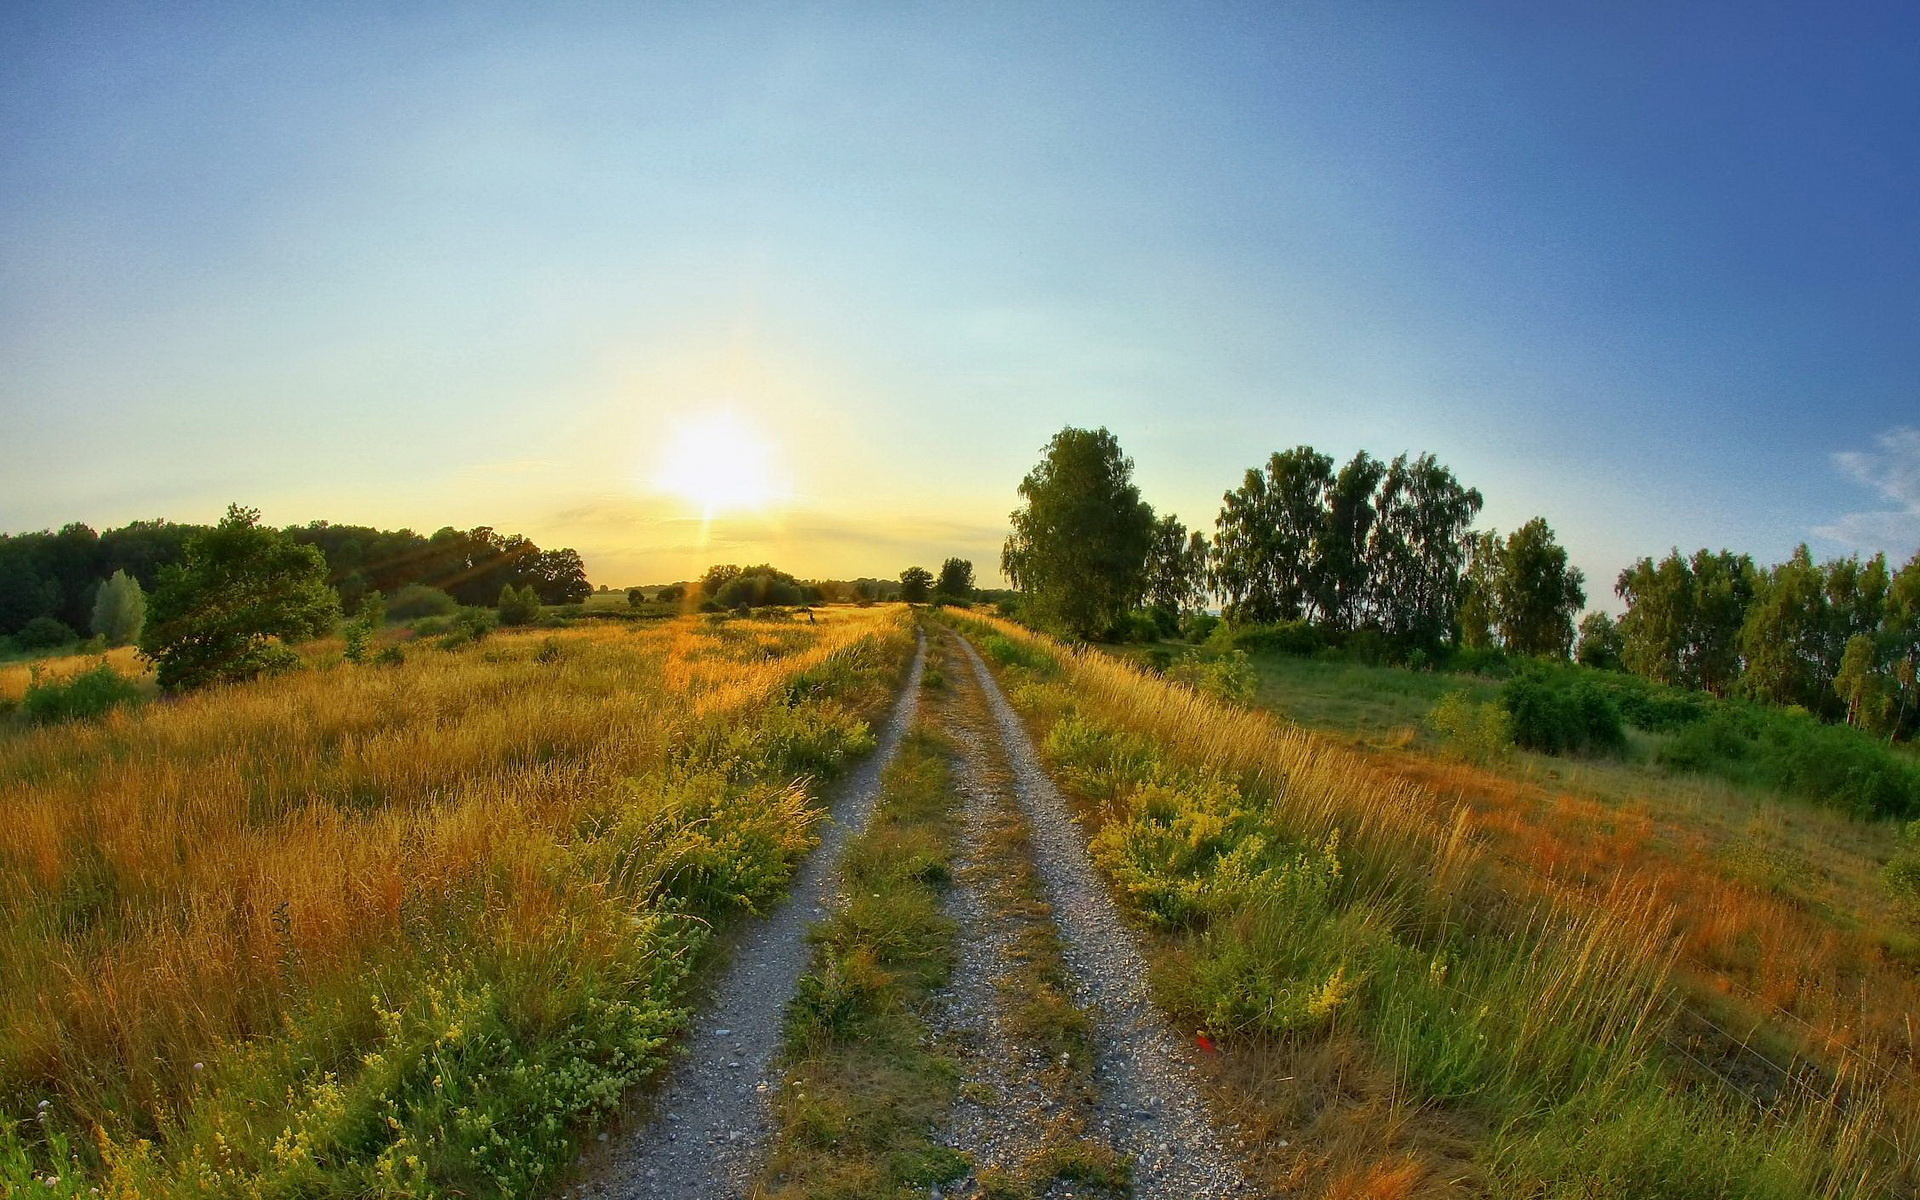 Road clearing summer sun sunrise sky landscapes fields grass